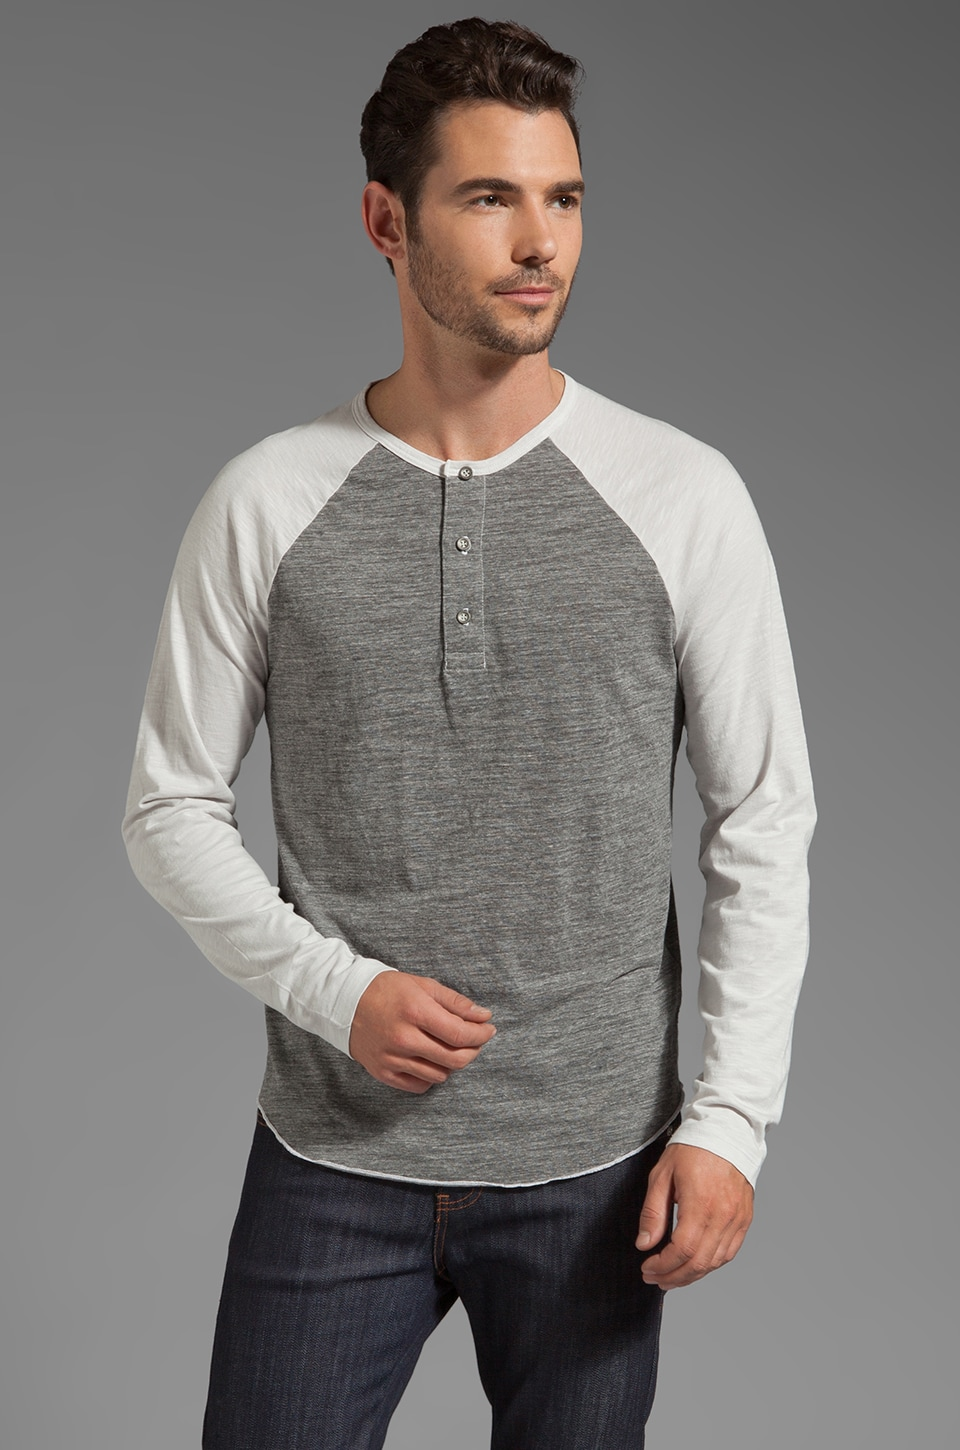 AG Adriano Goldschmied Mixed Raglan Henley in Antique White